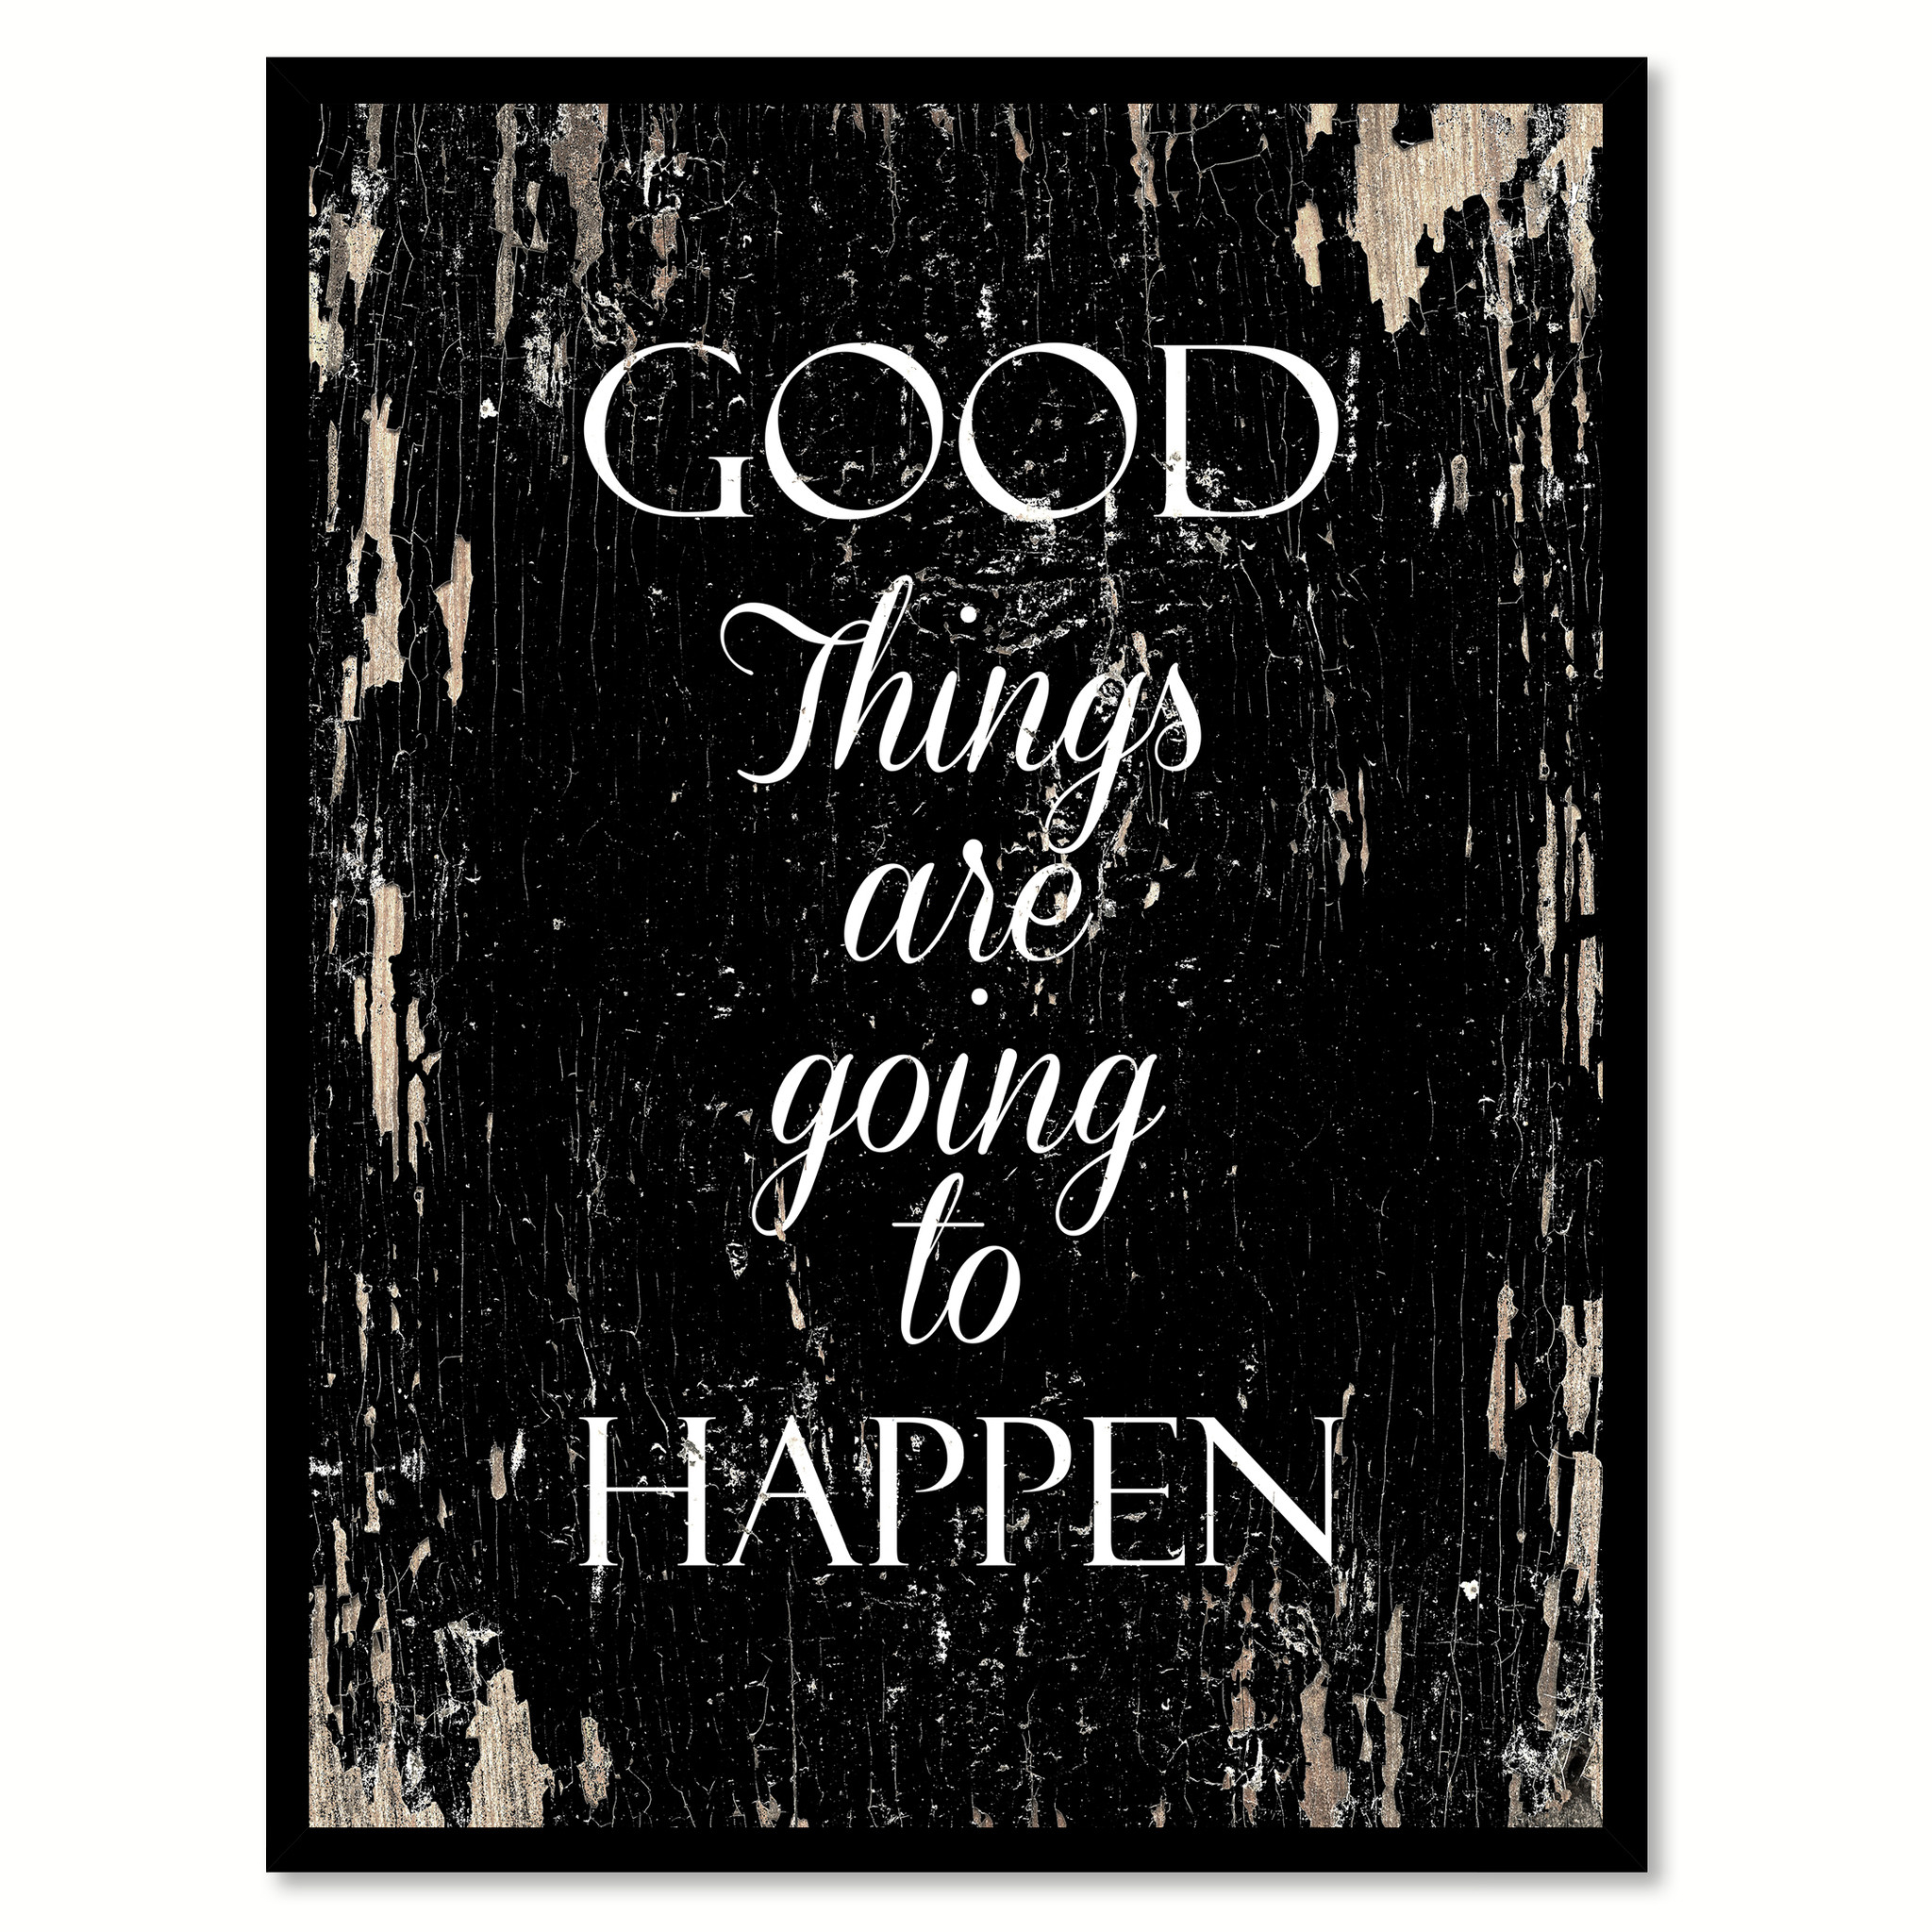 "Good Things Are Going To Happen Motivation Saying Canvas Print with Picture Frame Home Decor Wall Art Gifts - 7""x9\"""